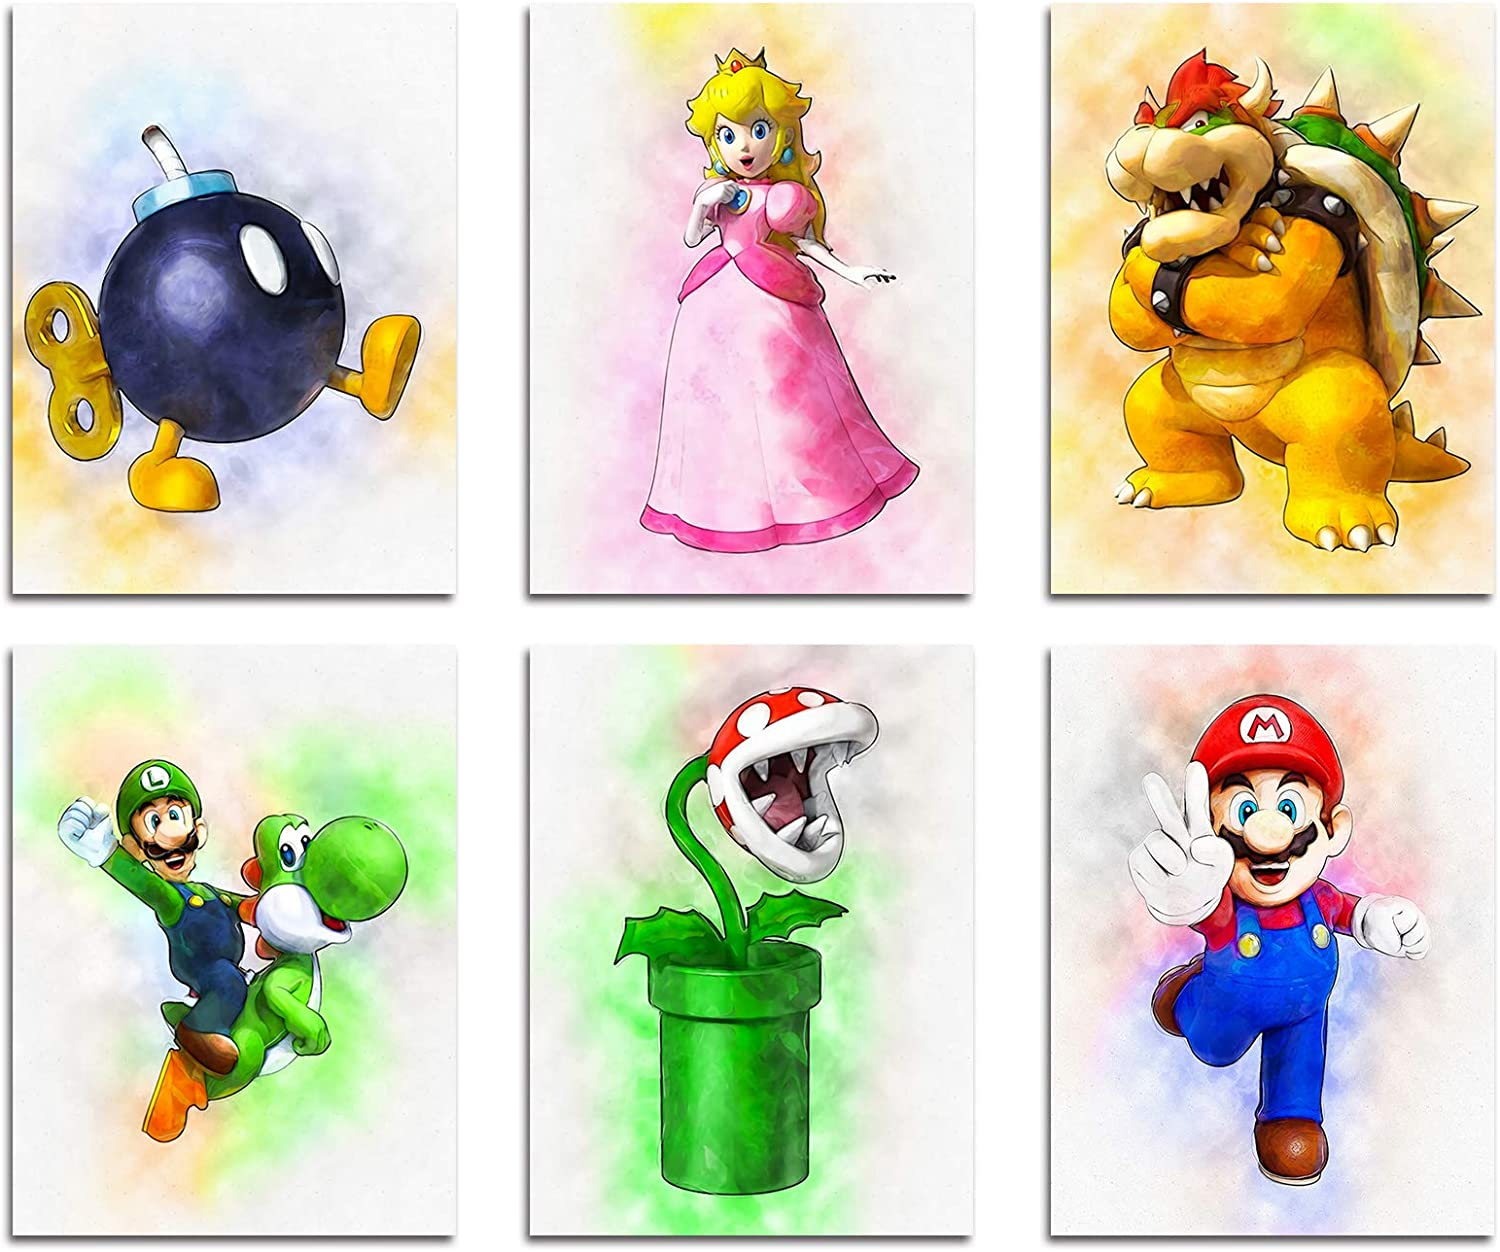 DAJIDALI Wall Art Prints, Super Mario Bros. Poster Watercolor Pictures Set of 6, Gift for Game Fans, Modern Home Decor for Living Room, Bedroom, Dorms, Game Room - 8x10 in, No Frame